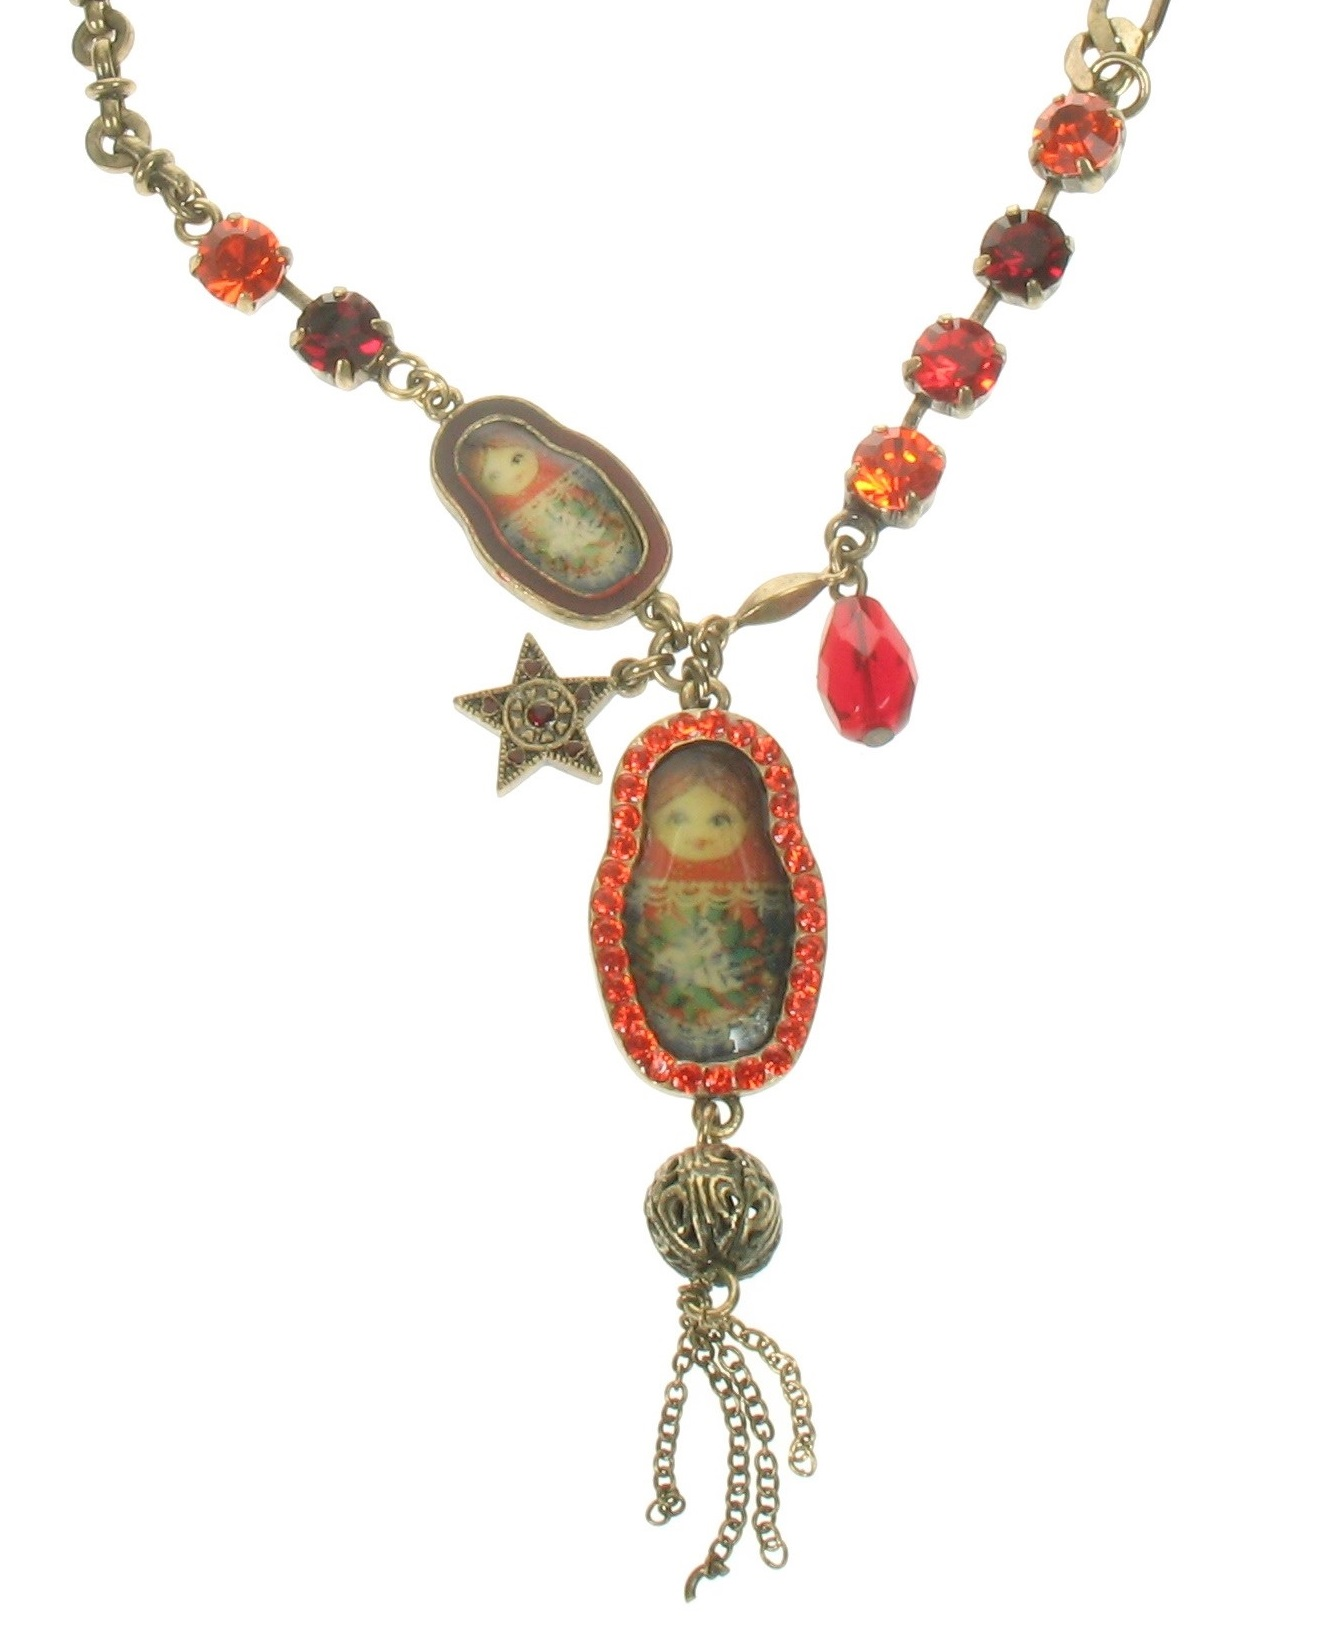 PILGRIM Two Russian Dolls Necklace - Oxidised Gold/Red